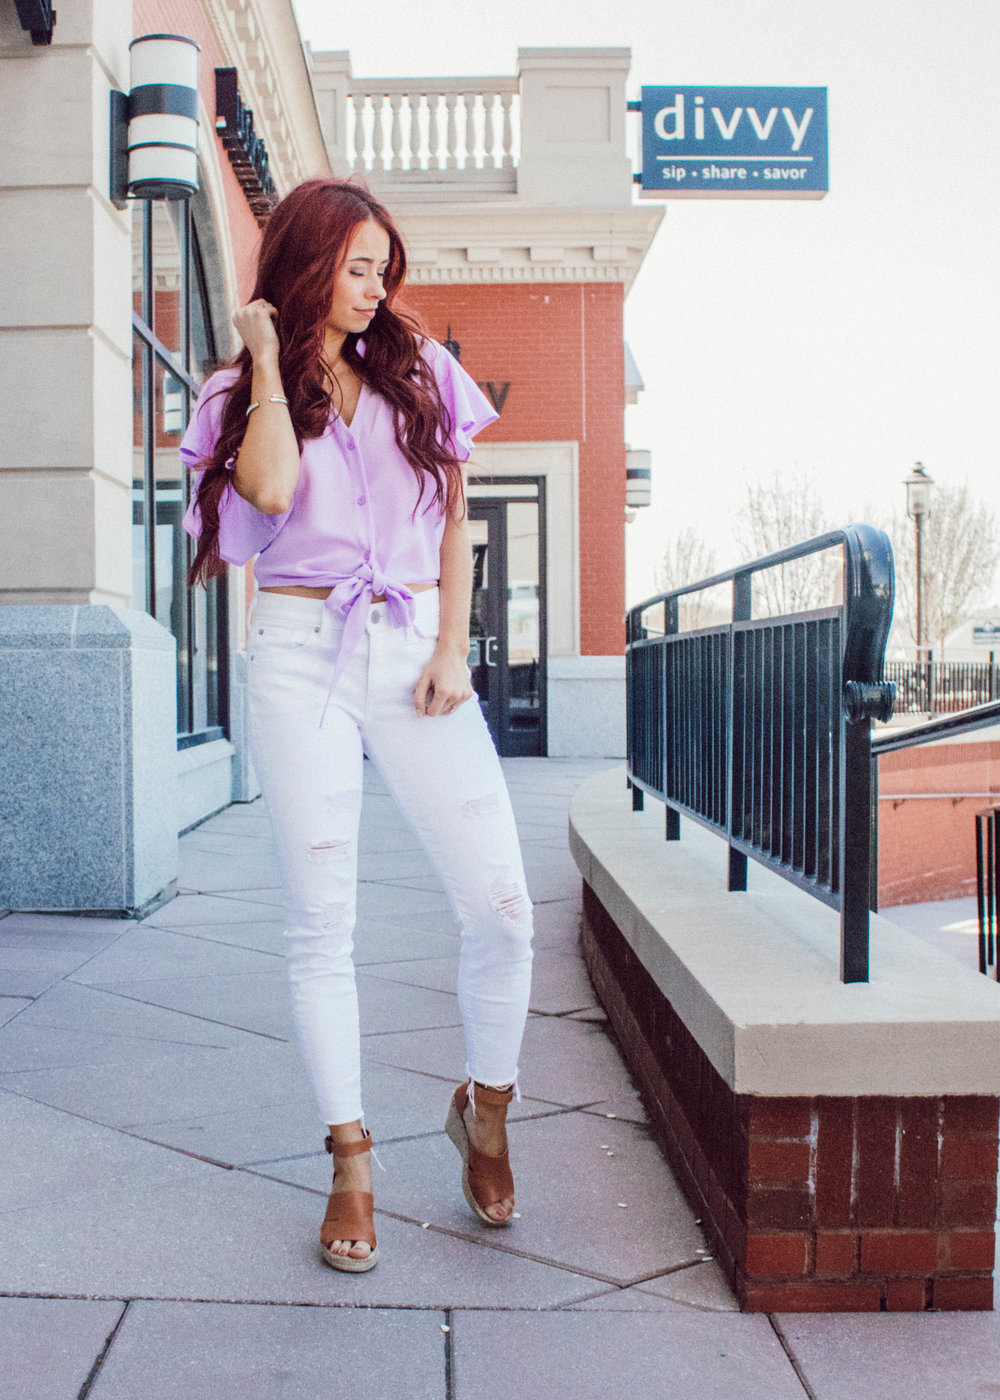 Bridal Shower Outfits for Guests featured by popular Indianapolis fashion blogger, Trendy in Indy